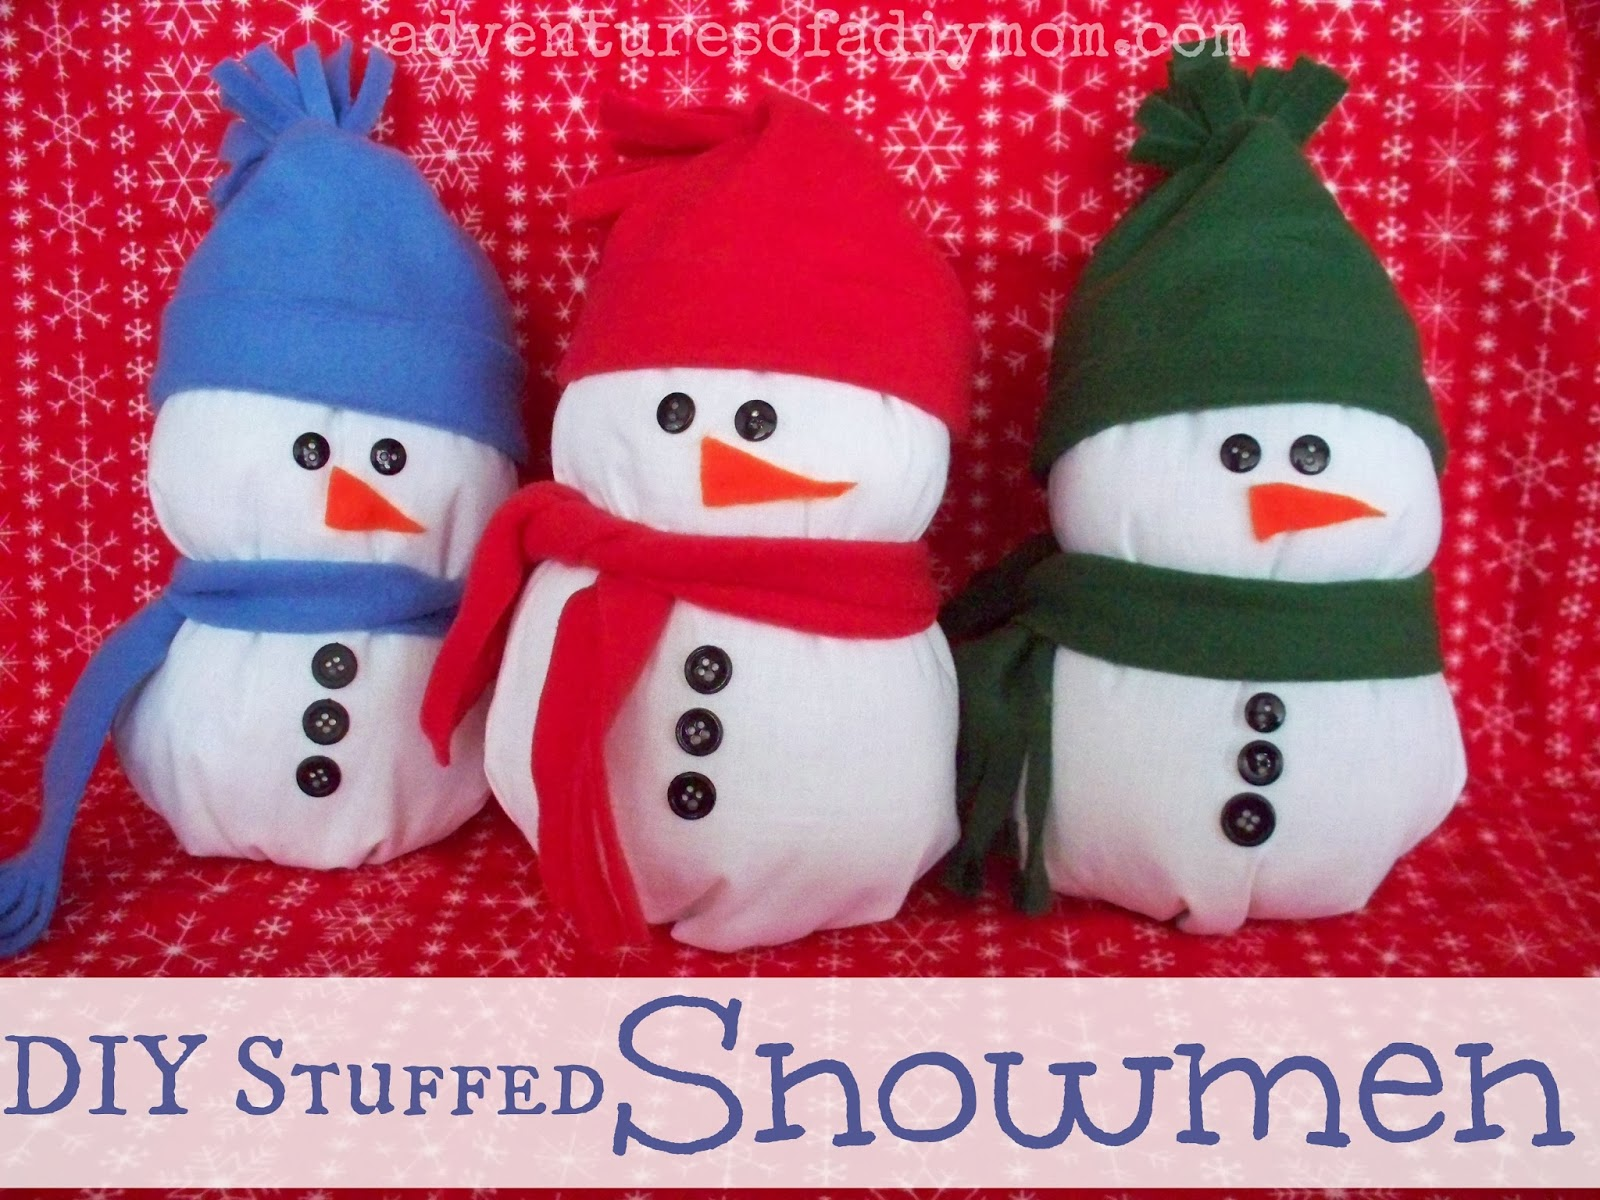 How to make a stuffed snowman adventures of a diy mom for How to make a snowman